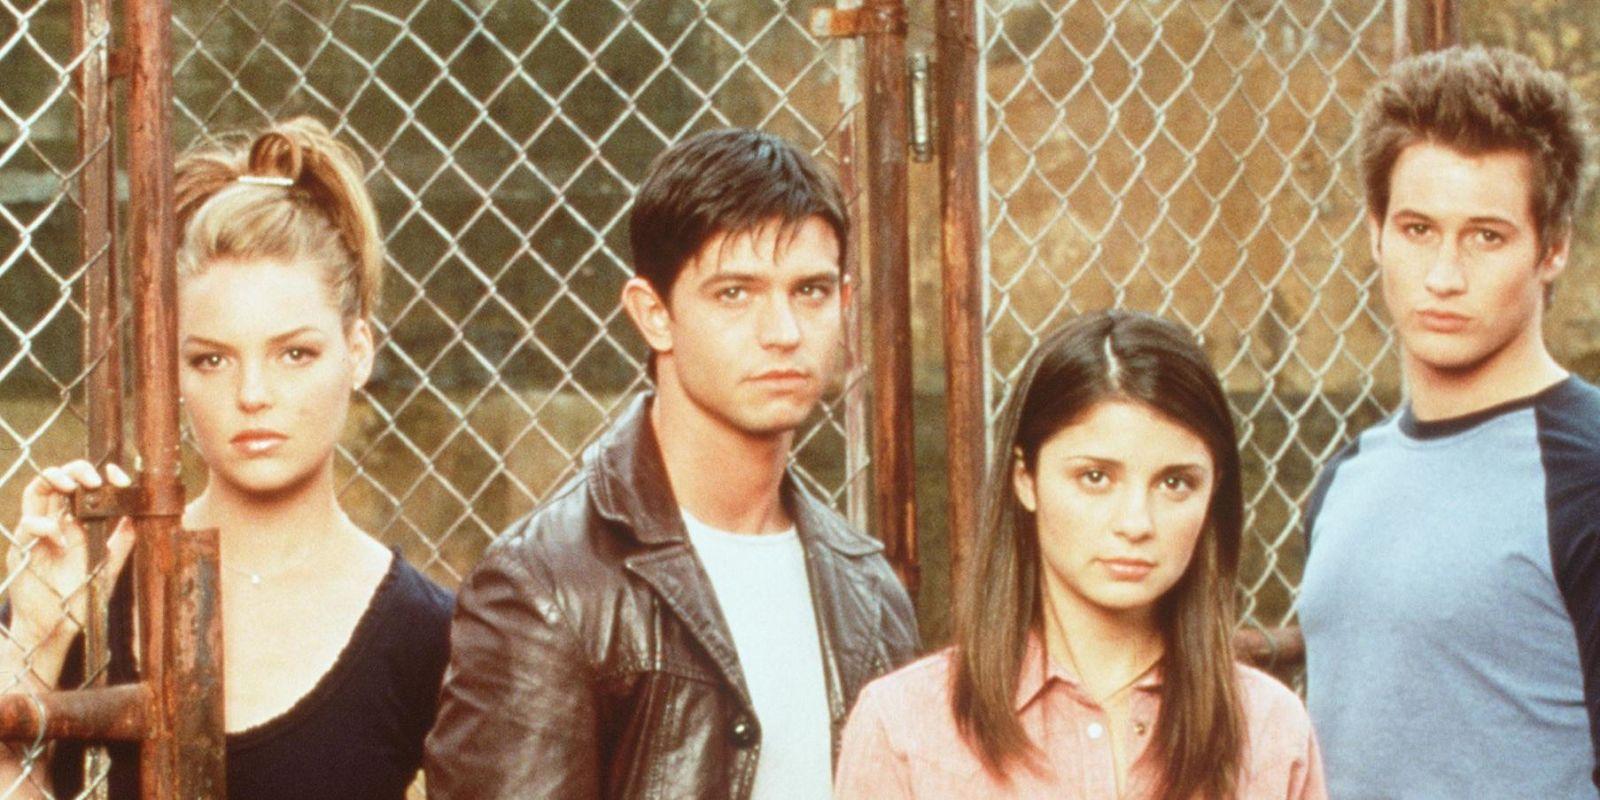 That Roswell reboot at The CW is officially happening